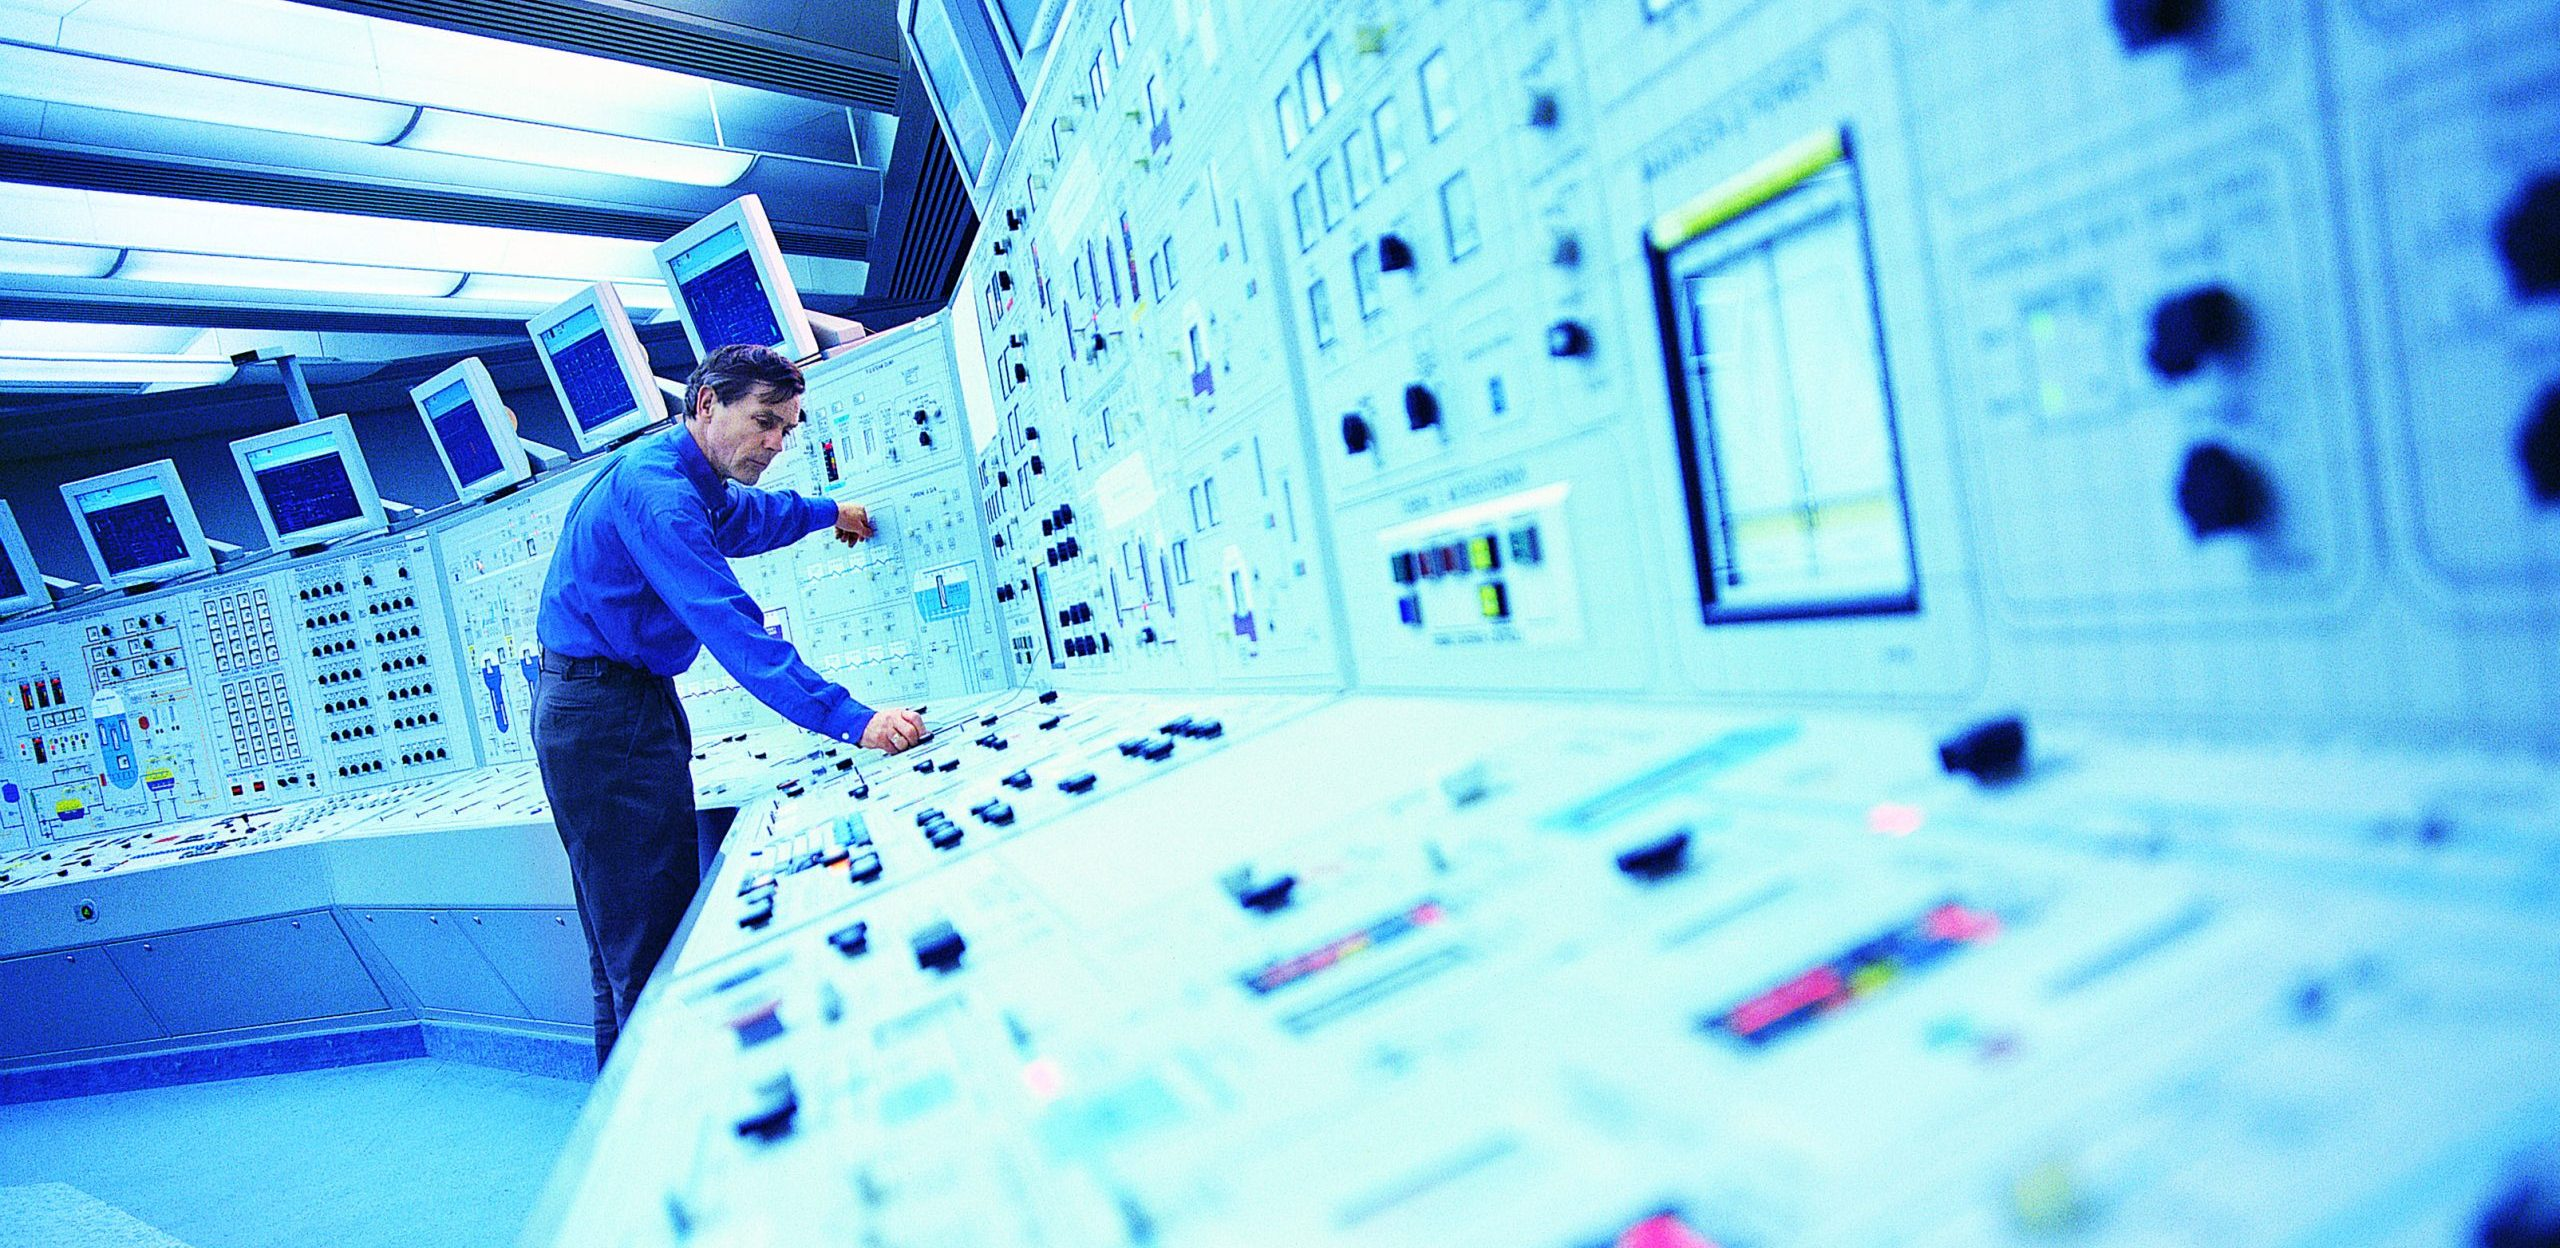 Instrumentation and control systems - Assystem